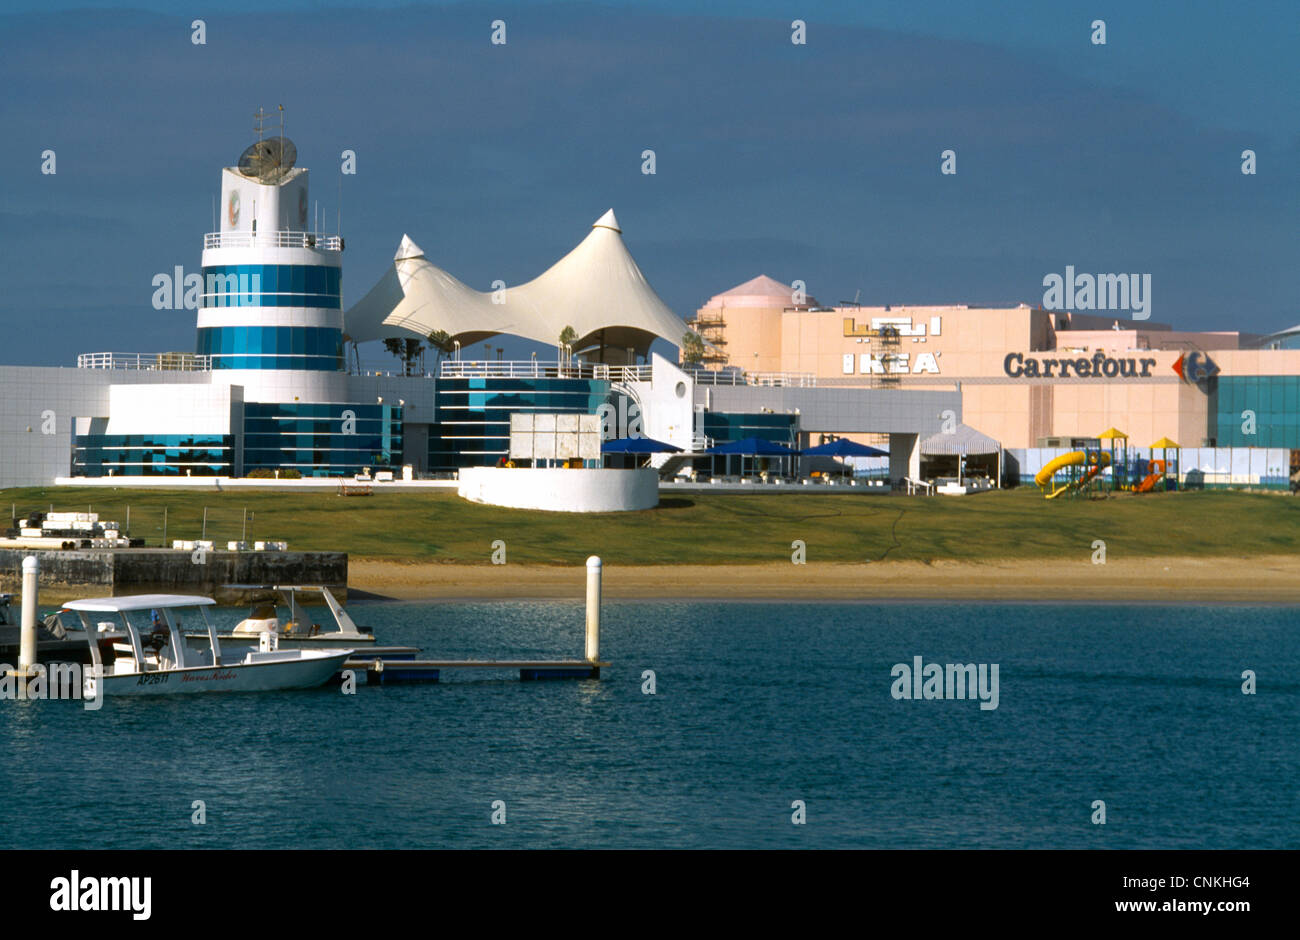 Abu Dhabi Uae Marina Club Ikea And Carrefour Buildings Stock Photo Royalty Free Image